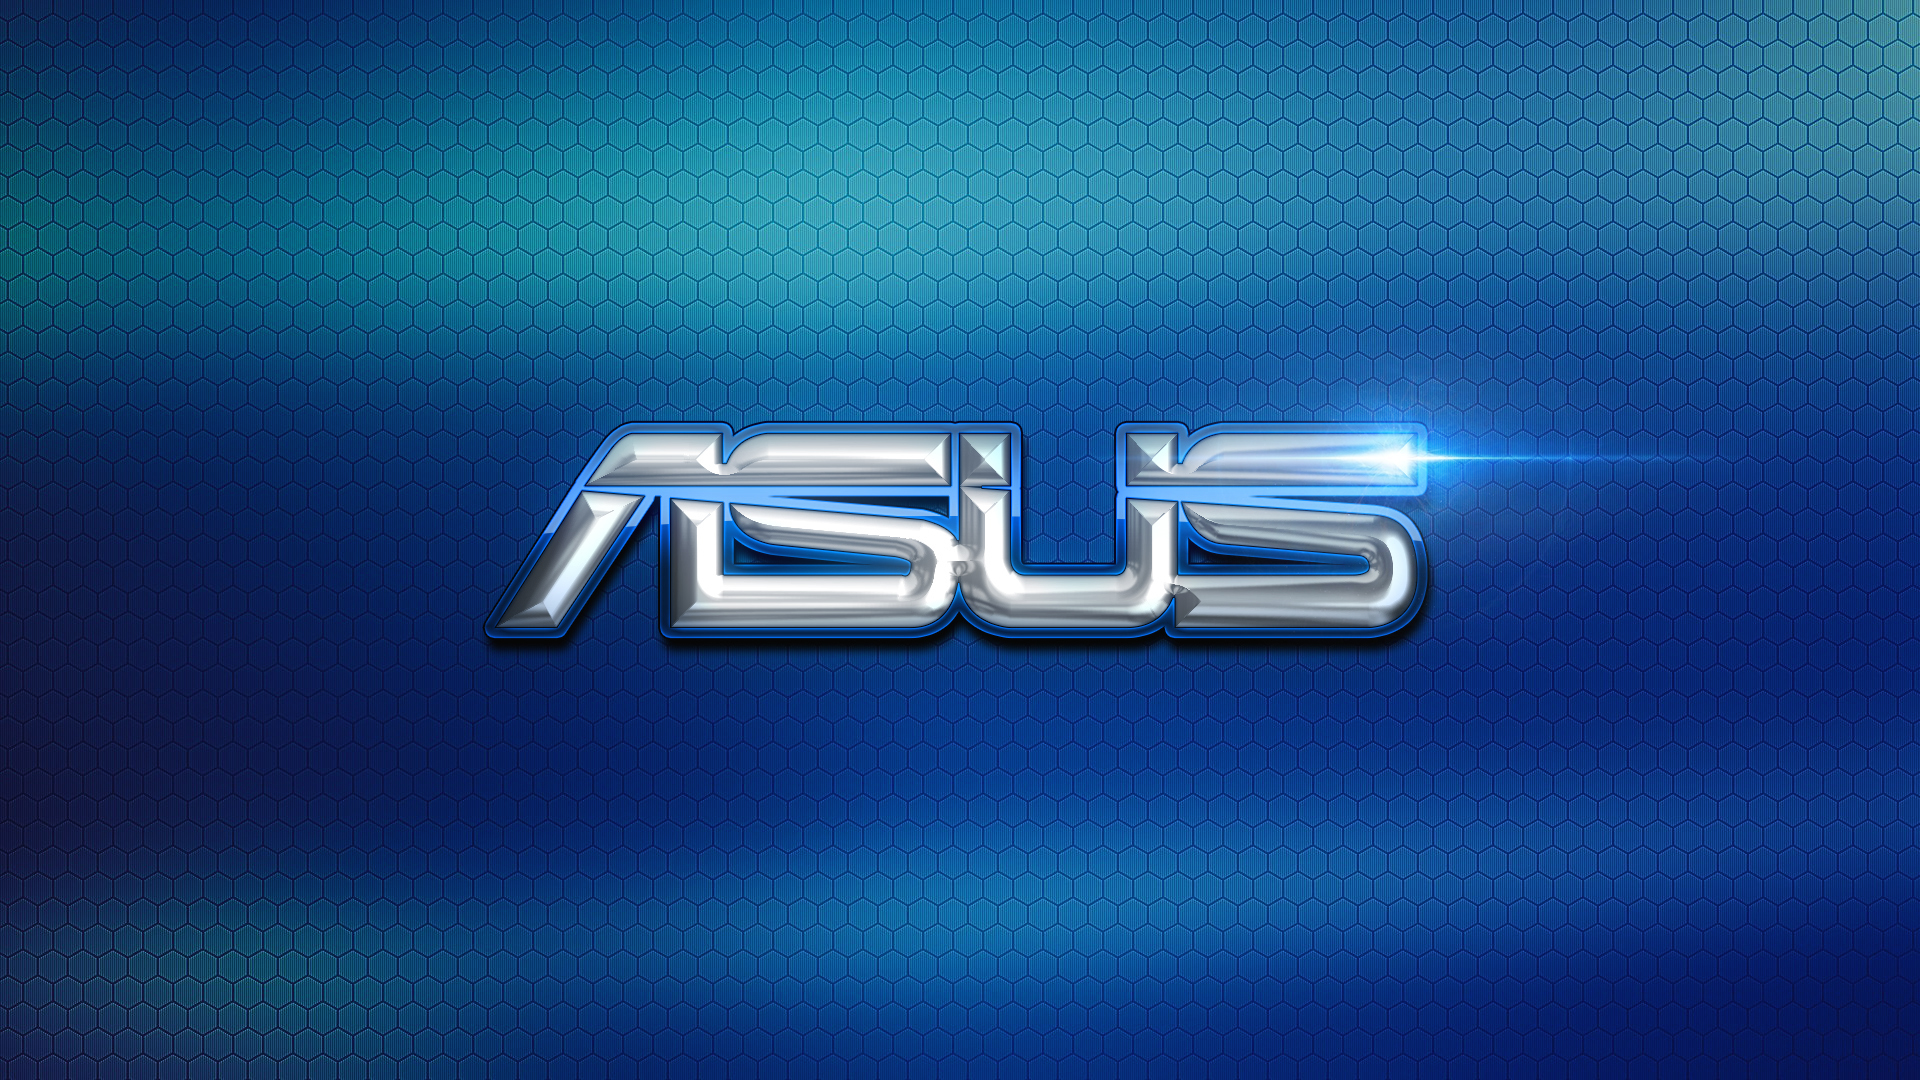 ASUS launches battery-extending app for Zenfone Max series